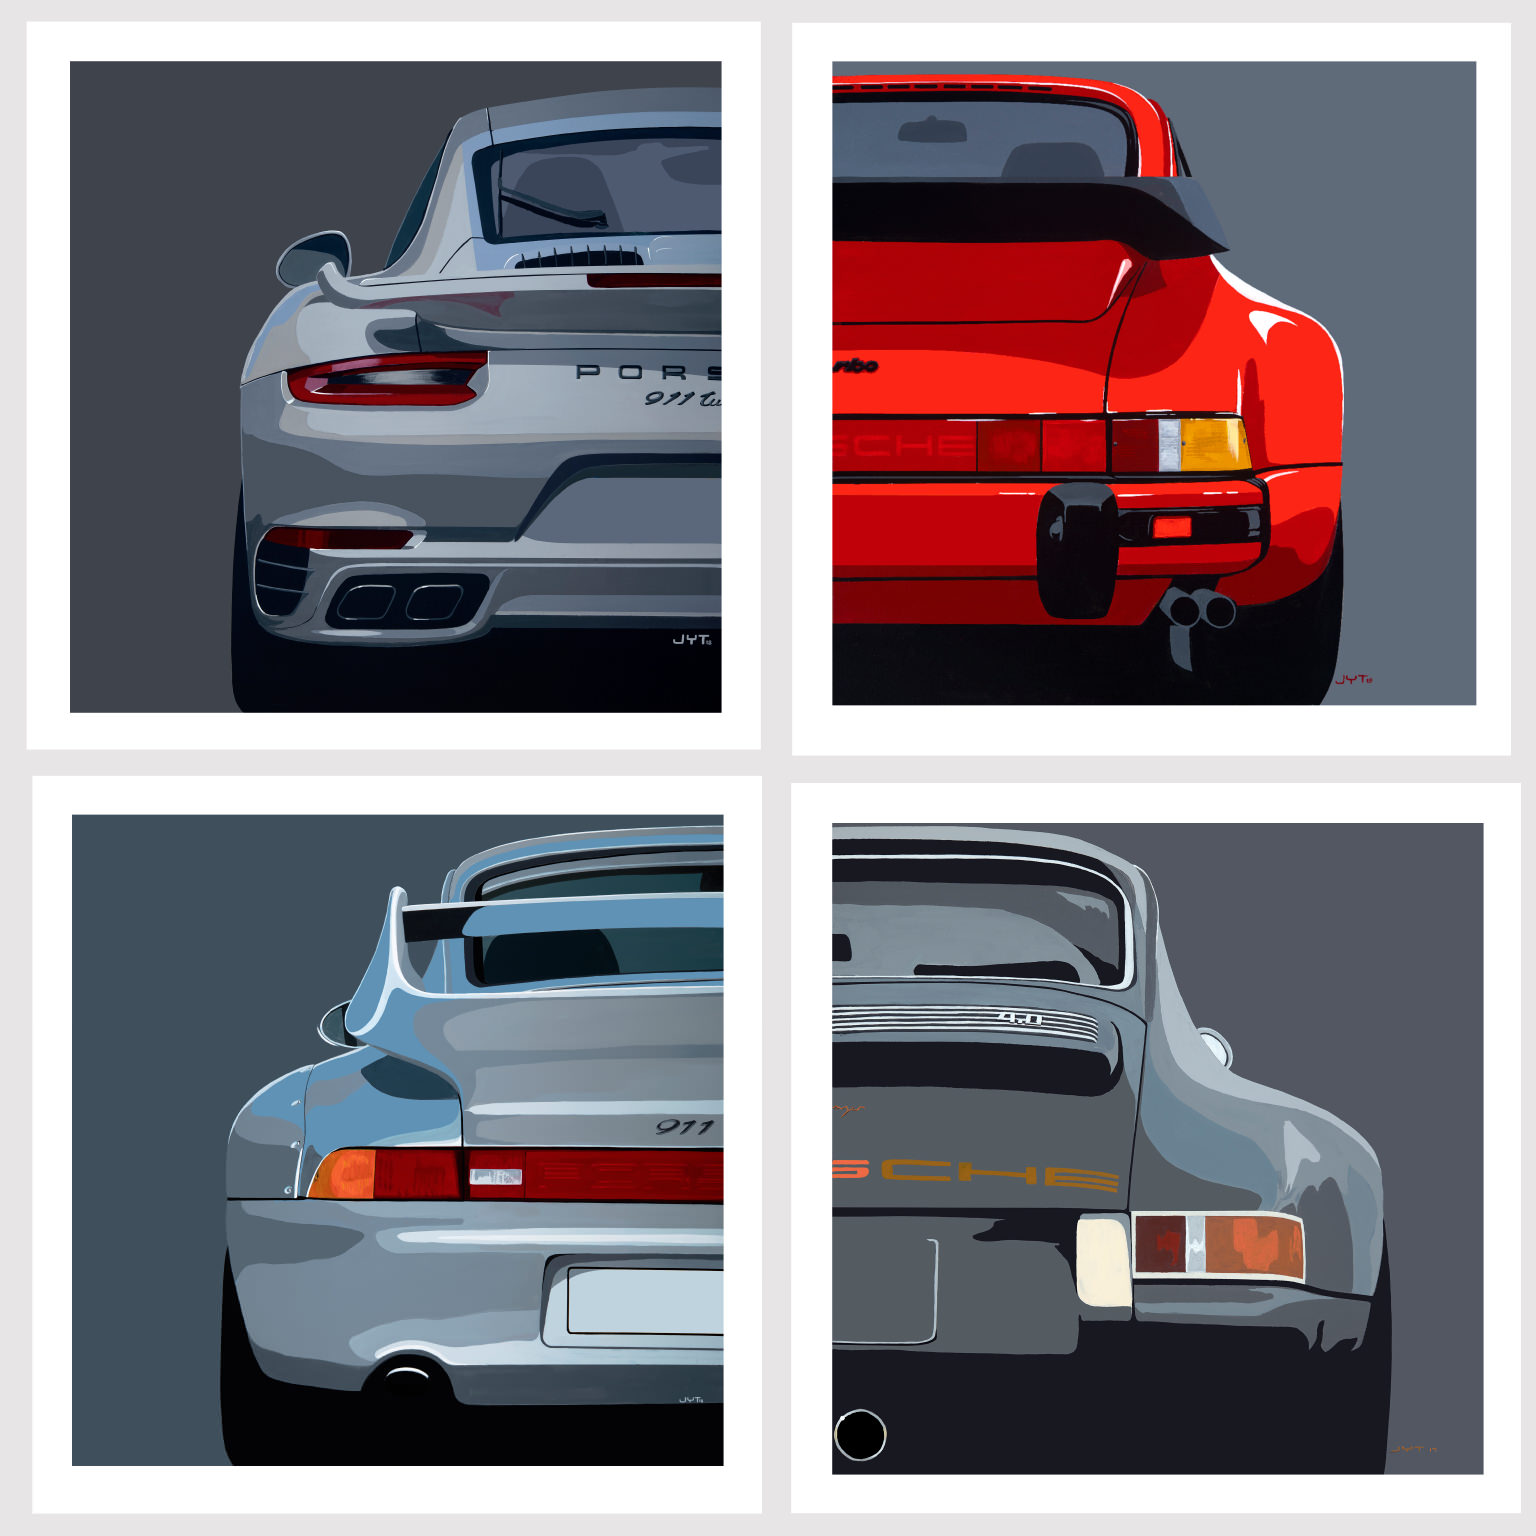 Product image for Porsche 911 modern classic: Limited Edition Print